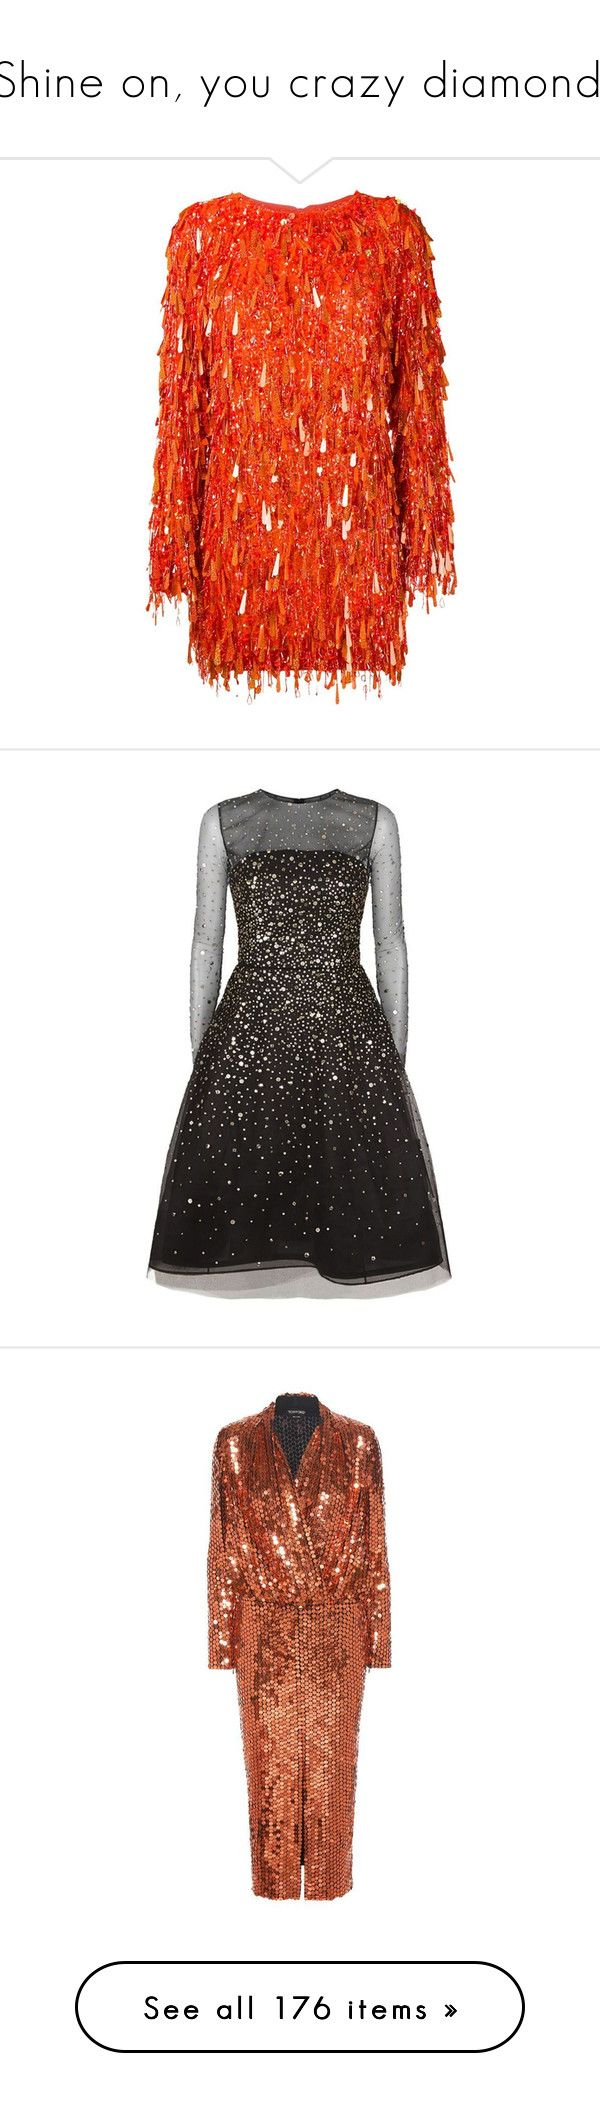 """""""Shine on, you crazy diamond."""" by pinkdaisyprincess on Polyvore featuring dresses, ashish, orange, red dress, red sequin dress, short cocktail dresses, red sequin cocktail dress, long sleeve sequin dress, sparkly cocktail dresses i sparkly dresses"""